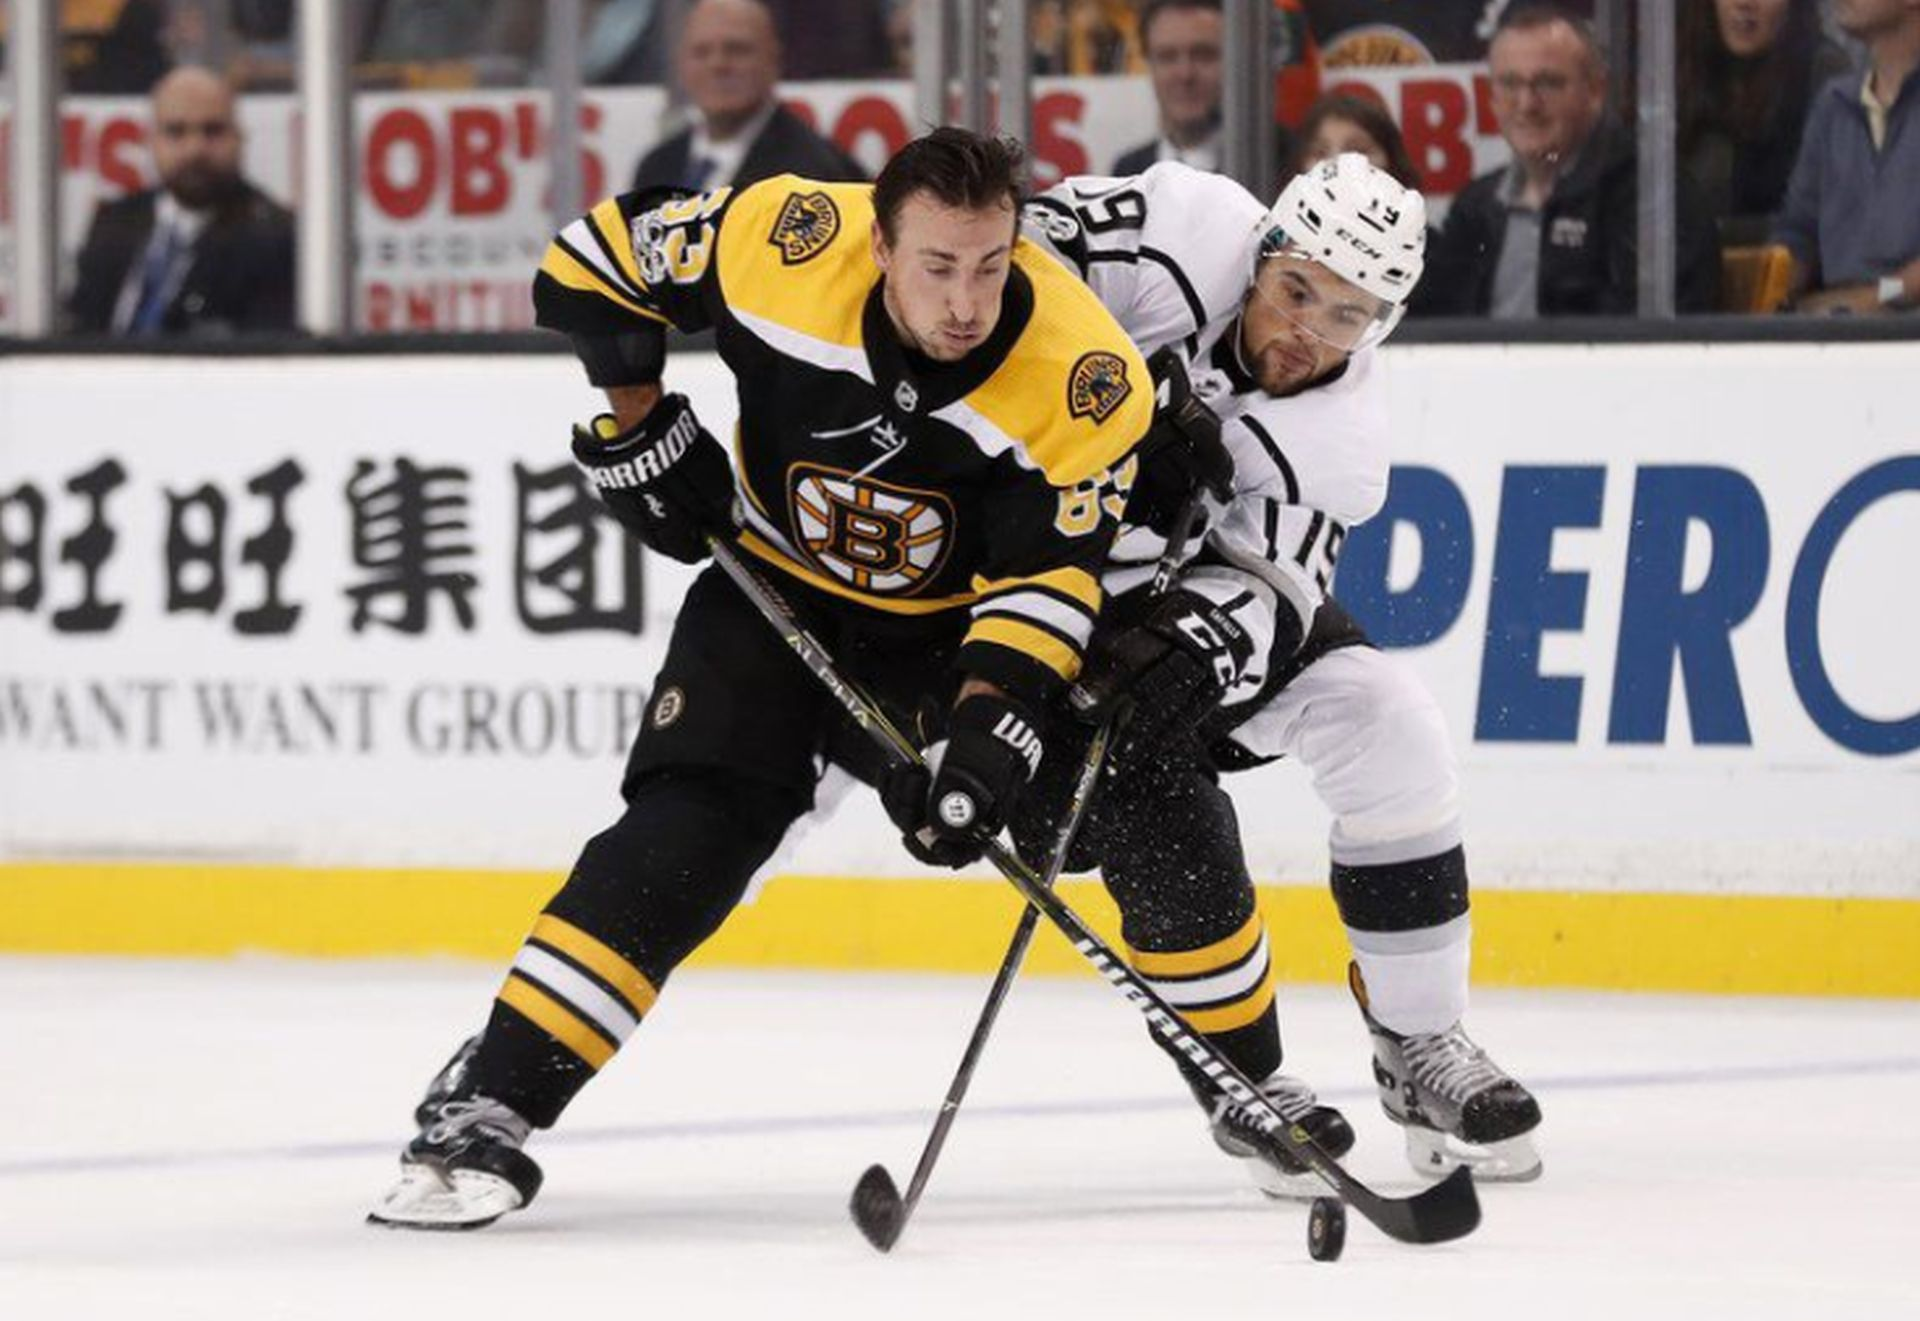 Brad Marchand of the Boston Bruins tries to keep Los Angeles Kings' Alex Iafallo (19) from the puck during a National Hockey League game in Boston on Saturday night. AP NEWSWIRE/Winslow Townson